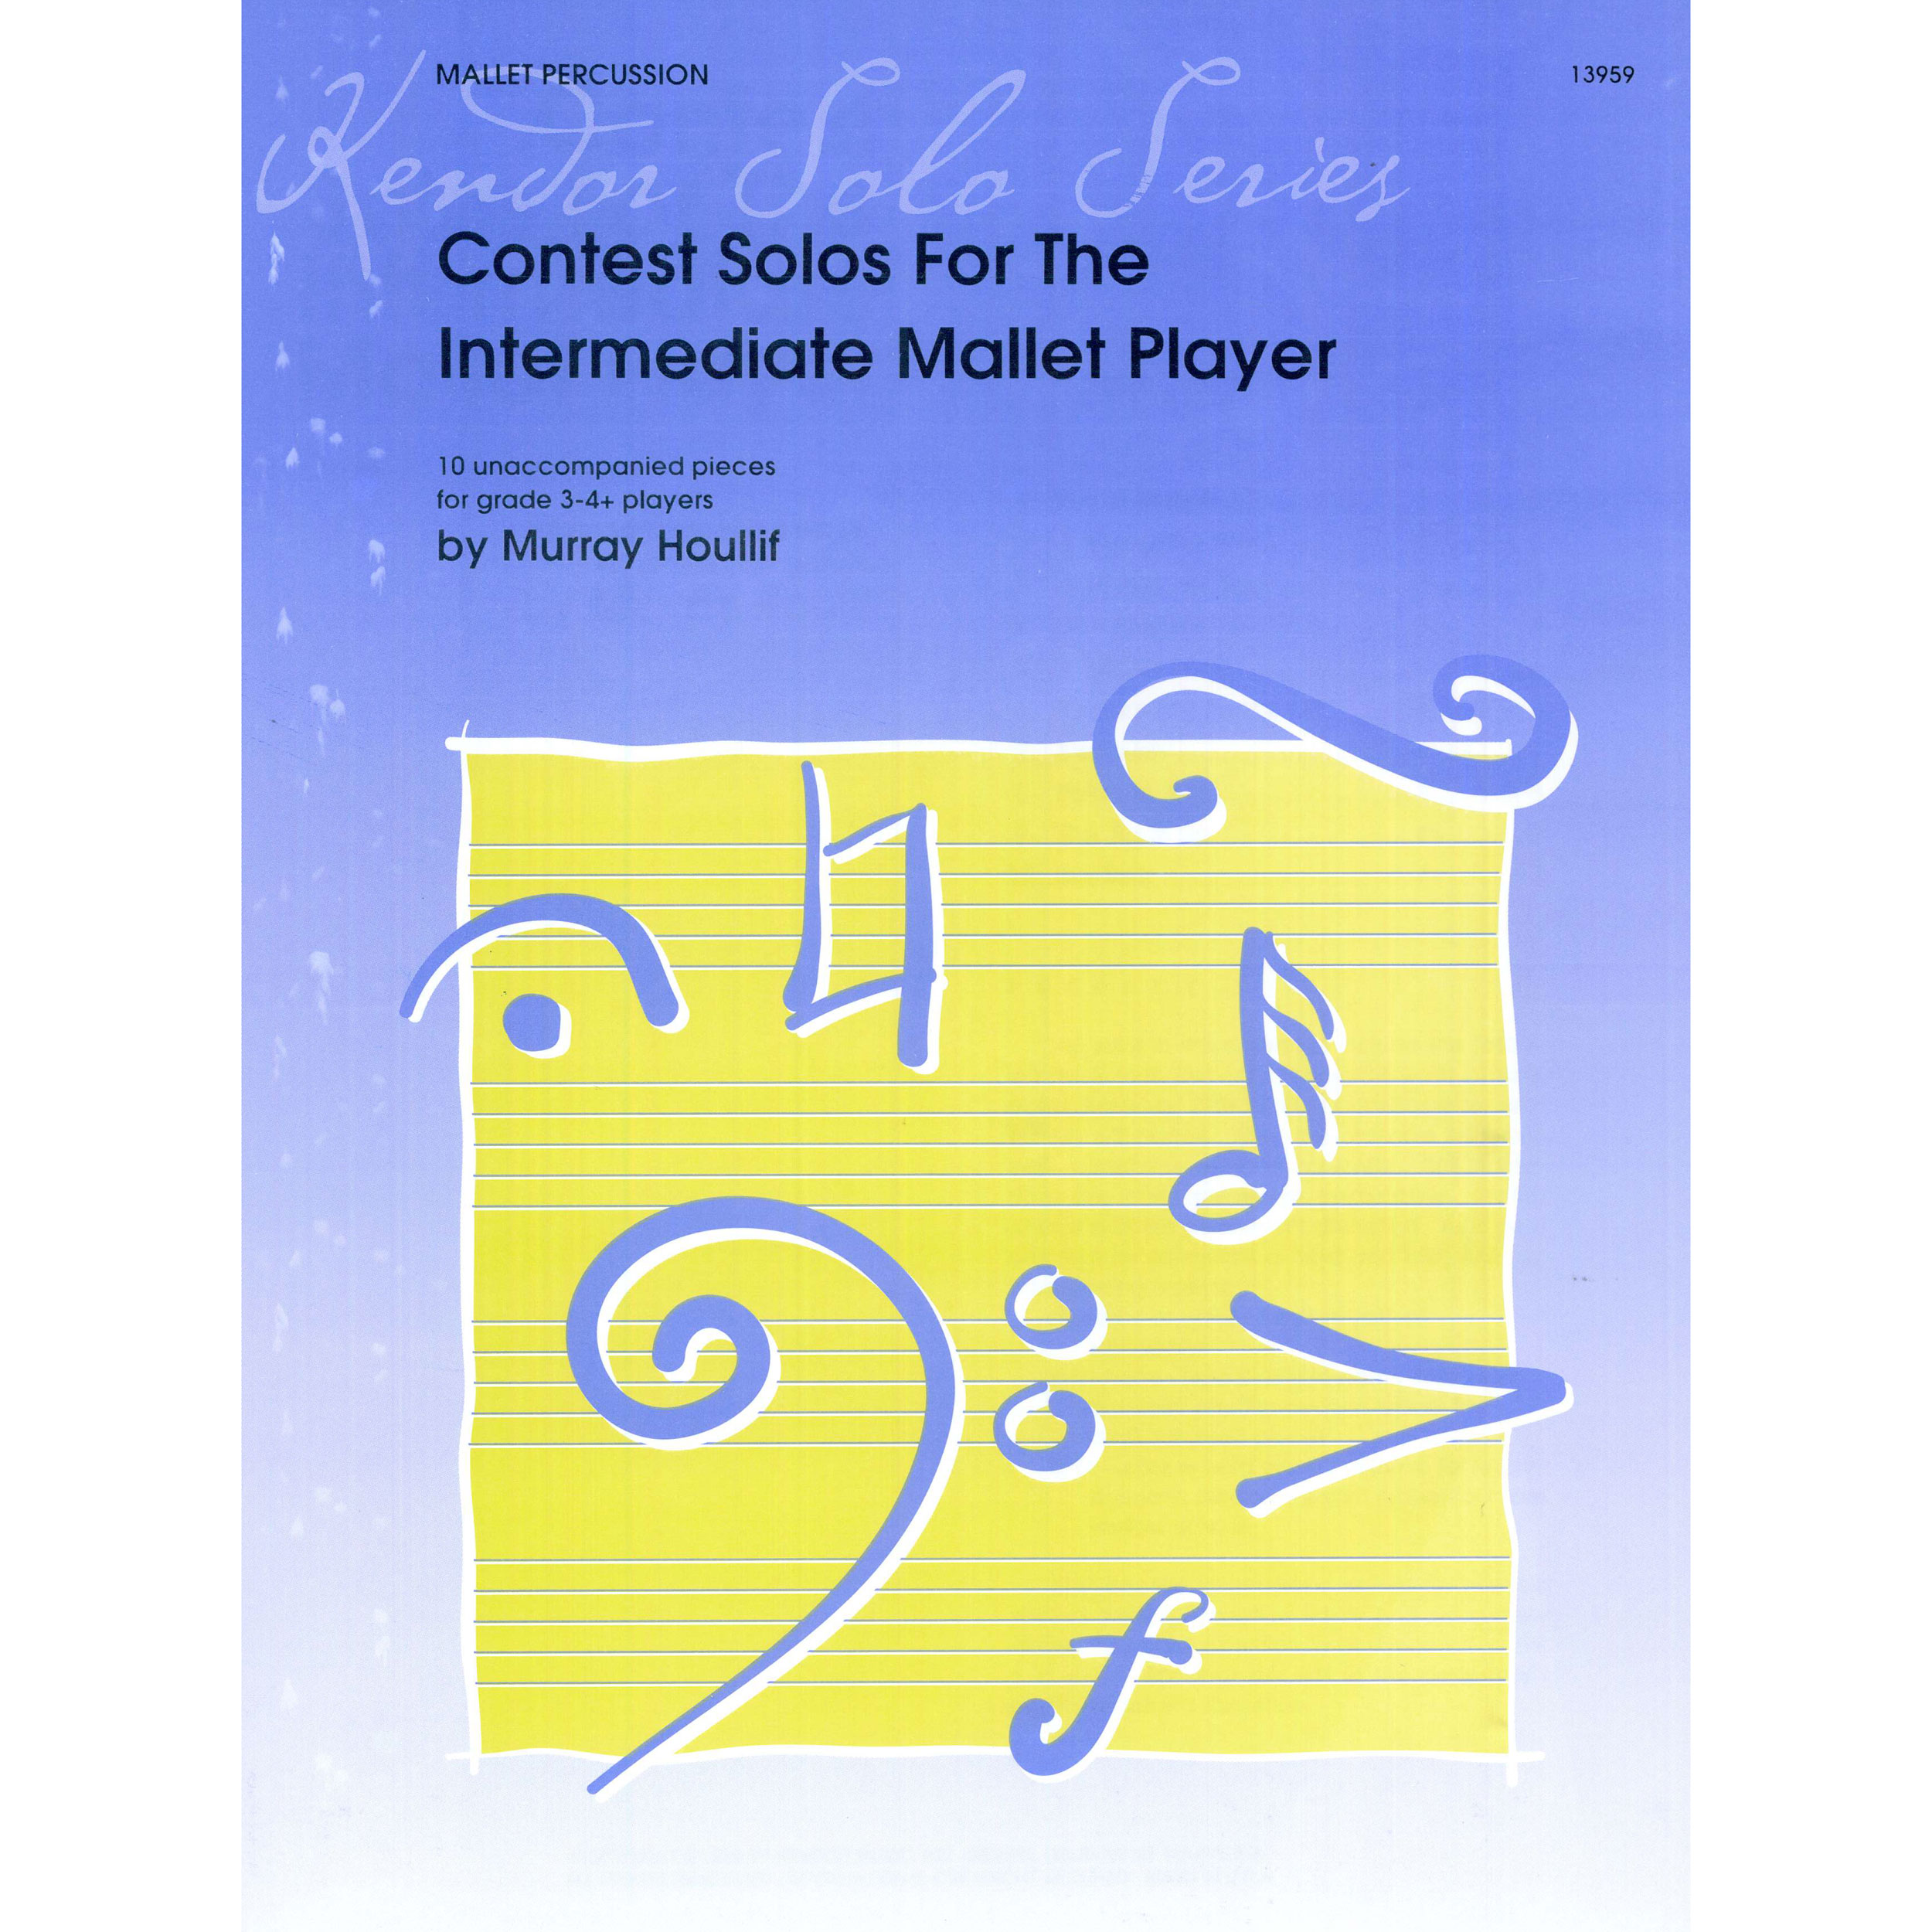 Contest Solos For The Intermediate Mallet Player by Murray Houllif